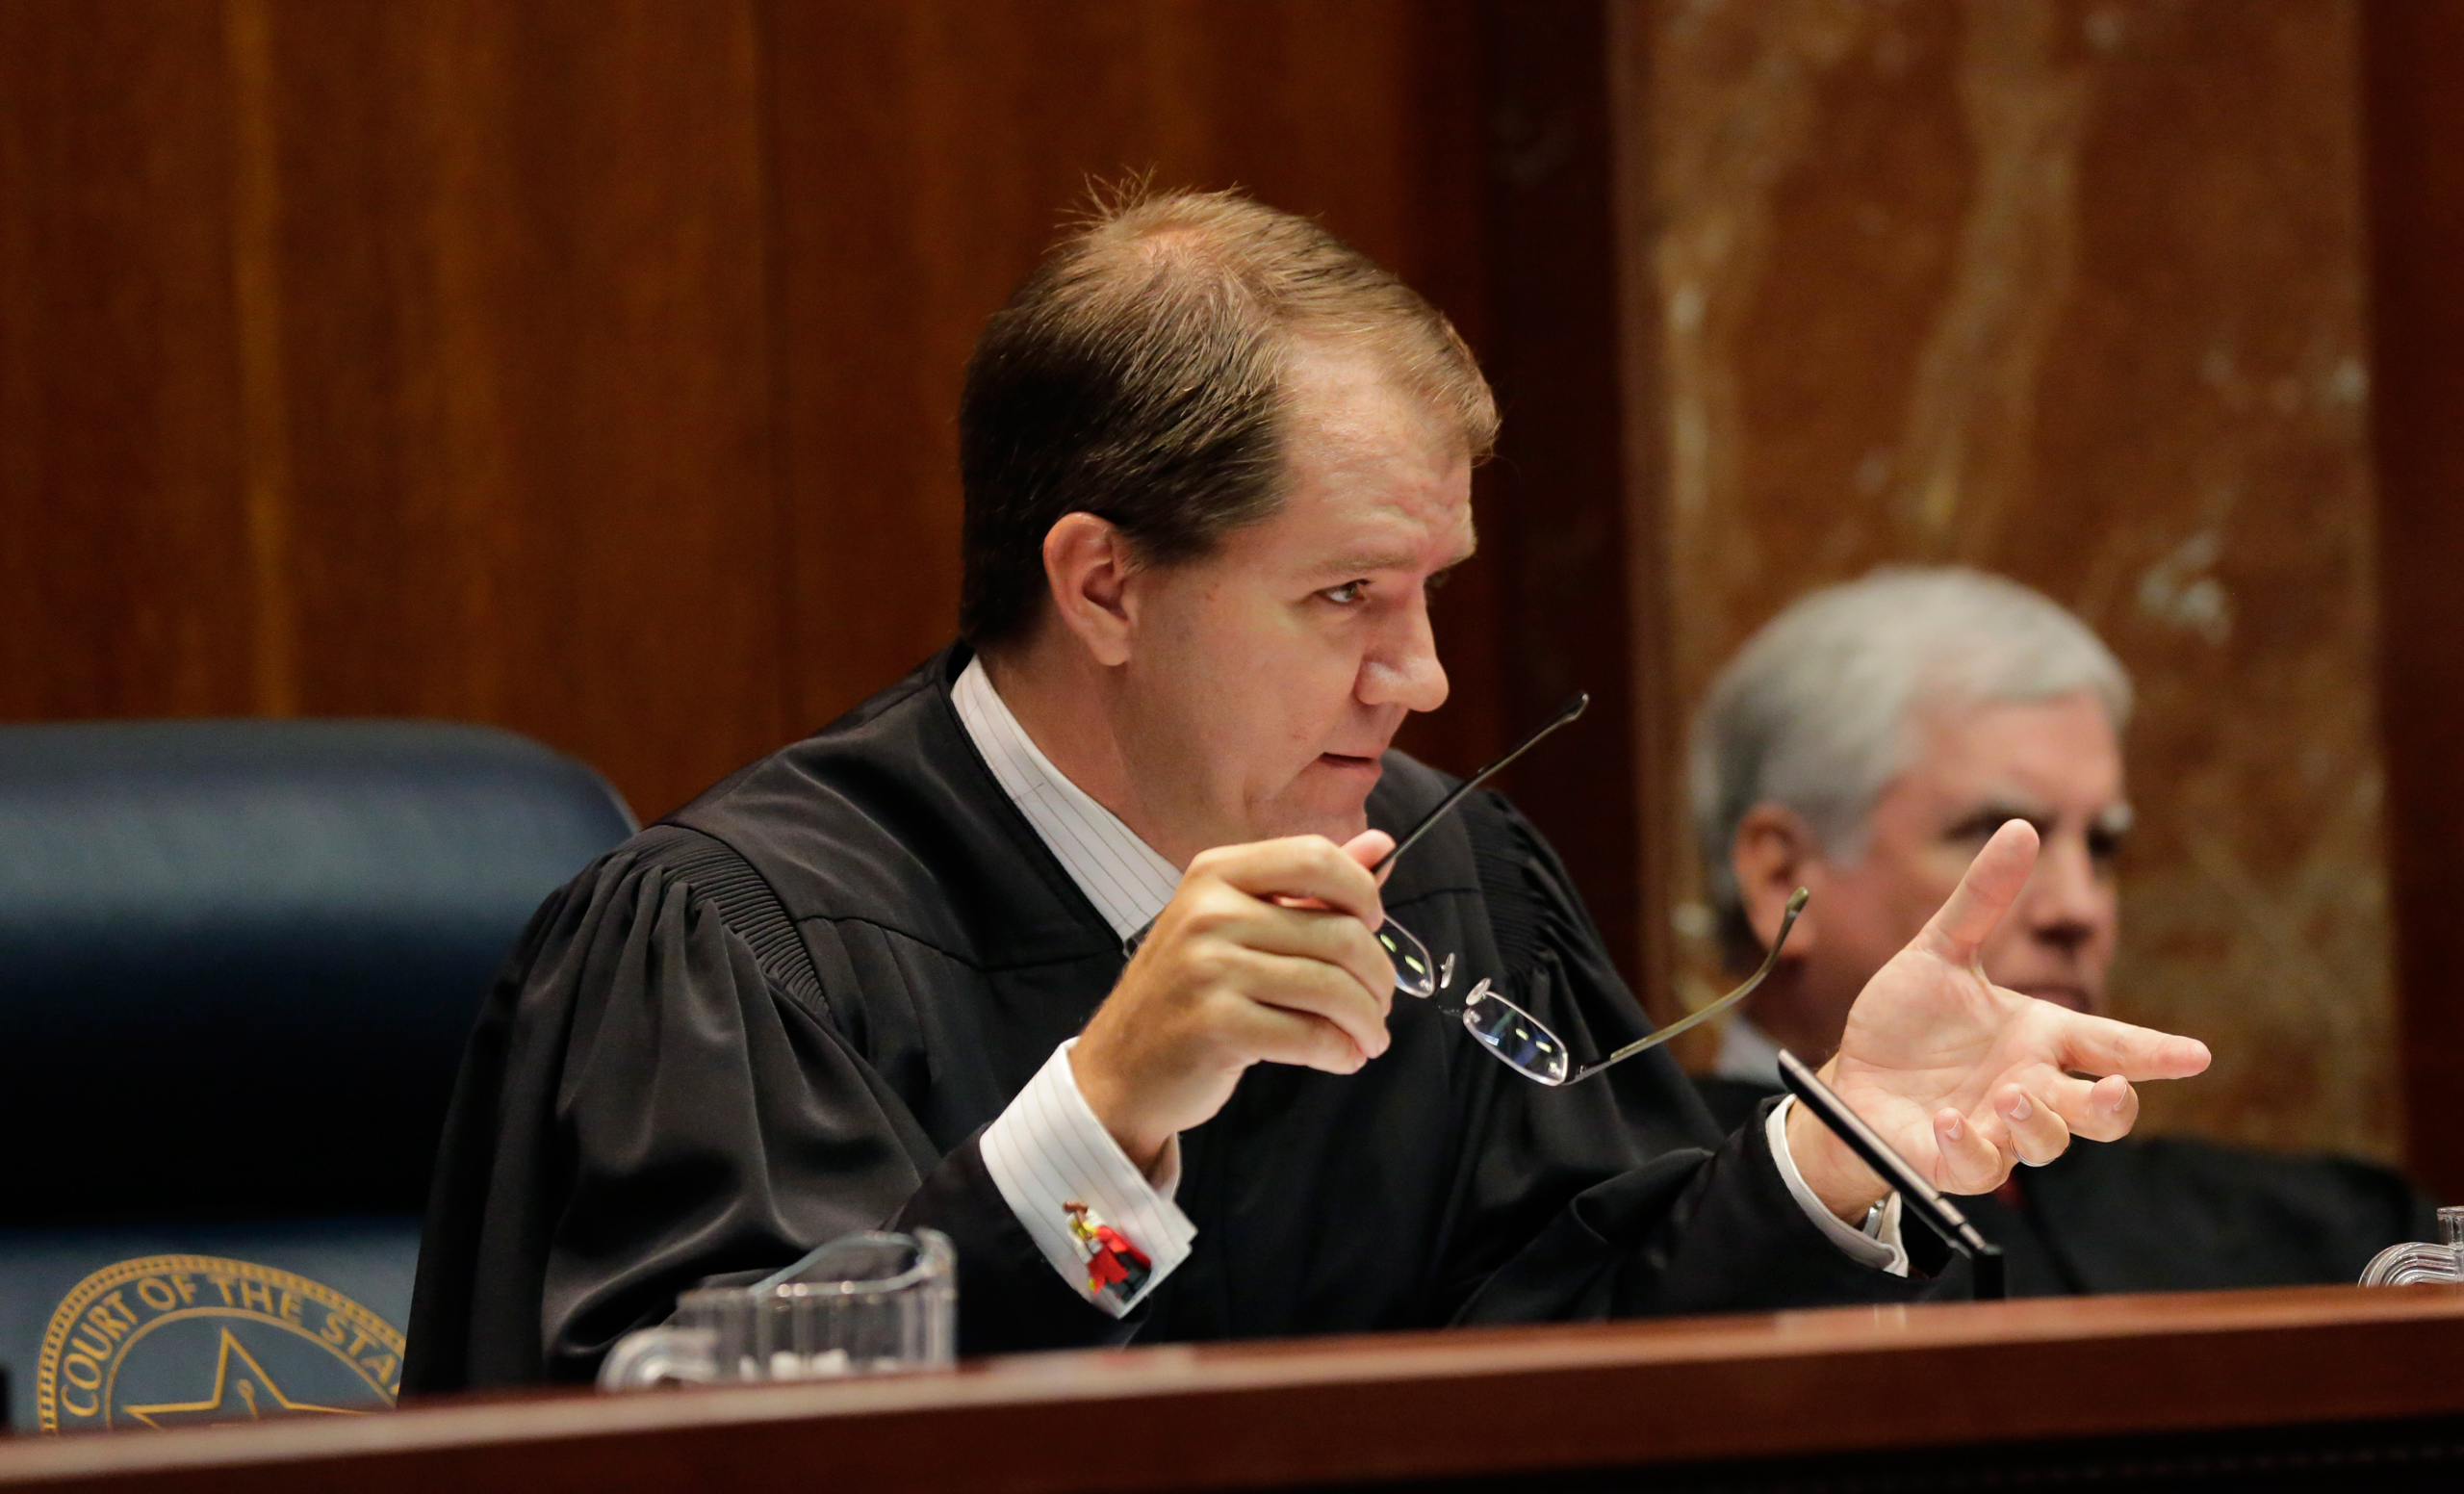 Texas Supreme Court Justice Don Willett, left, asks a question during oral arguments in Texas' latest school finance case at the state Supreme Court, Tuesday, Sept. 1, 2015, in Austin, Texas. Attorneys for more than 600 school districts suing Texas argue that the funding is inadequate and unfairly distributed, making it hard for students and schools to meet stringent academic standards. Attorney General Ken Paxton's office counters that, while not perfect, public education money meets state constitutional requirements for an efficient system providing a  general diffusion of knowledge. (AP Photo/Eric Gay)